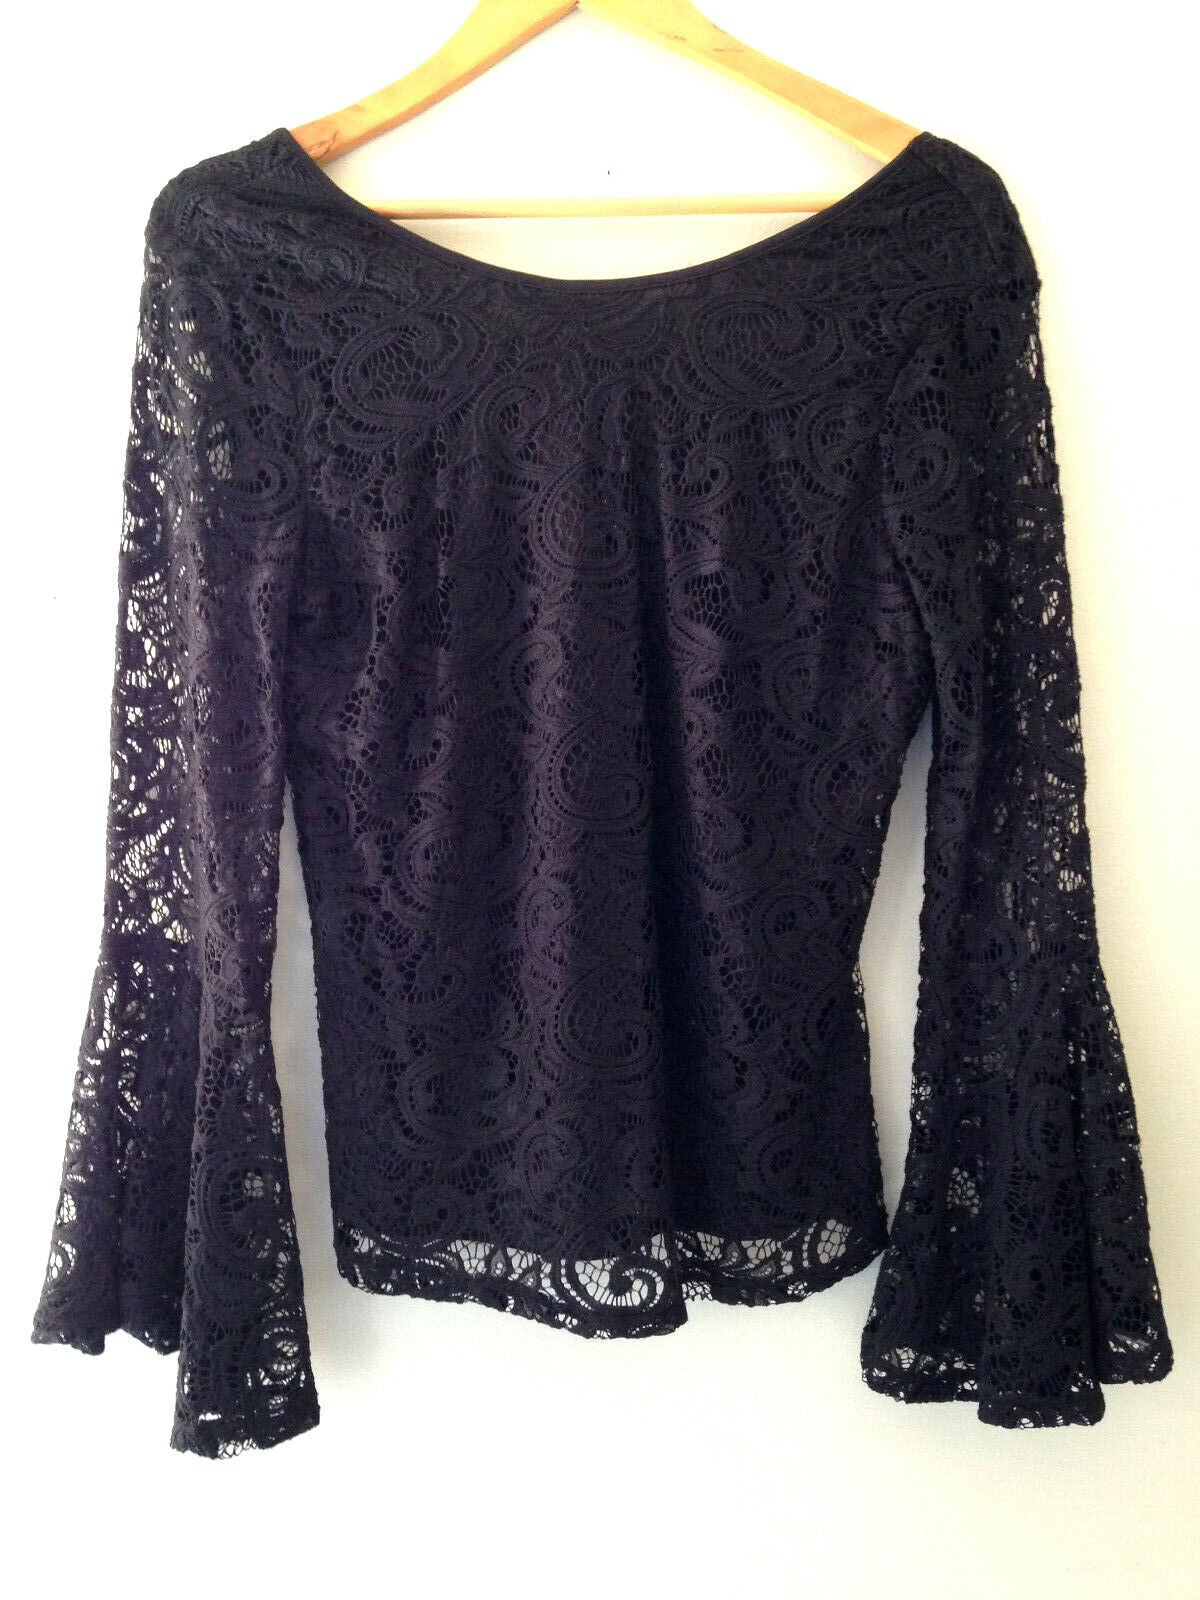 NWT Adrianna Papell Elegant schwarz Bell Sleeve Knit Lace Wide Neck Blouse Top M